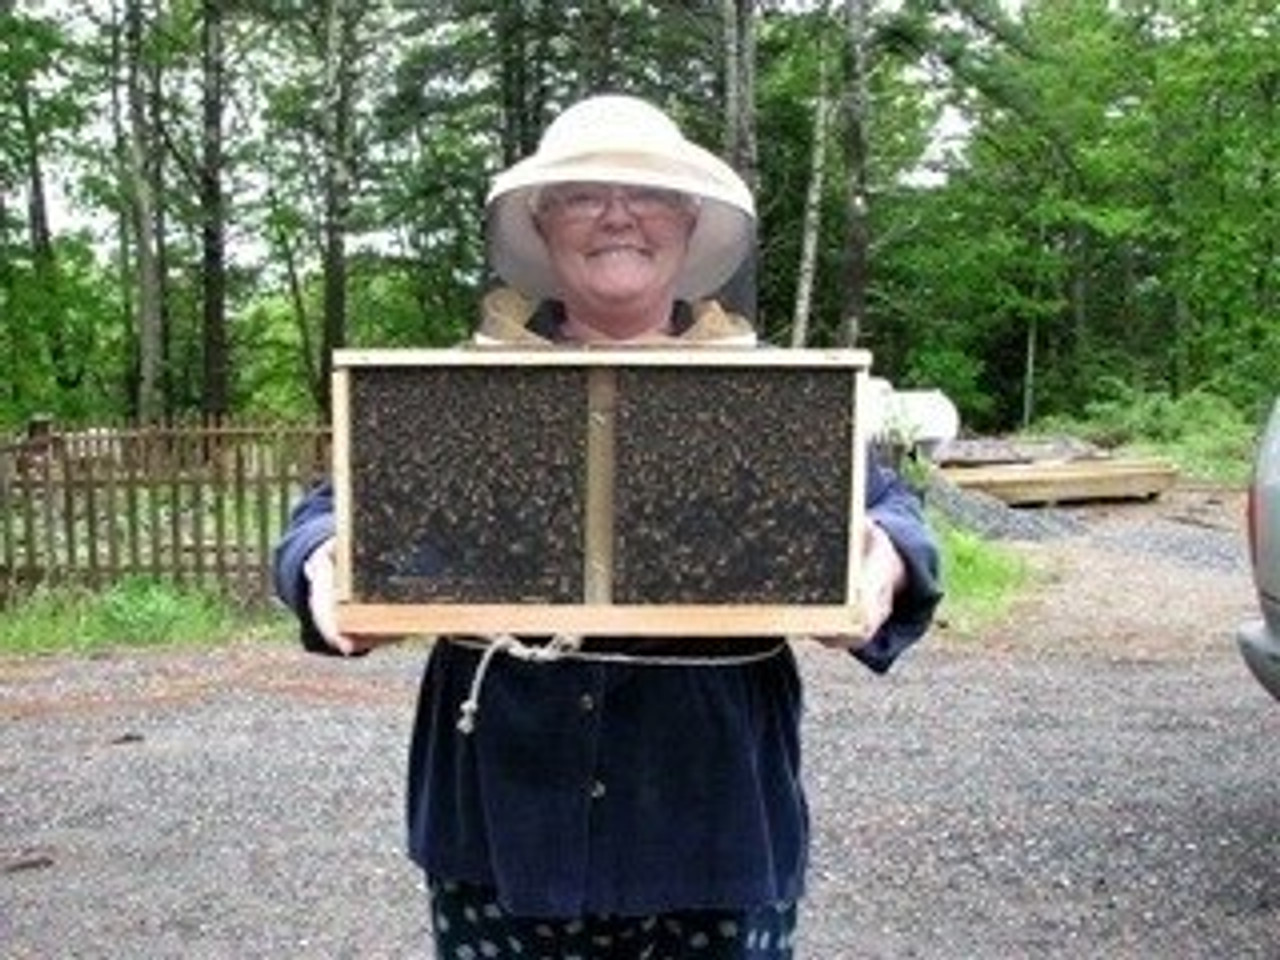 Another happy customer with her beautiful 3# package of honey bees.